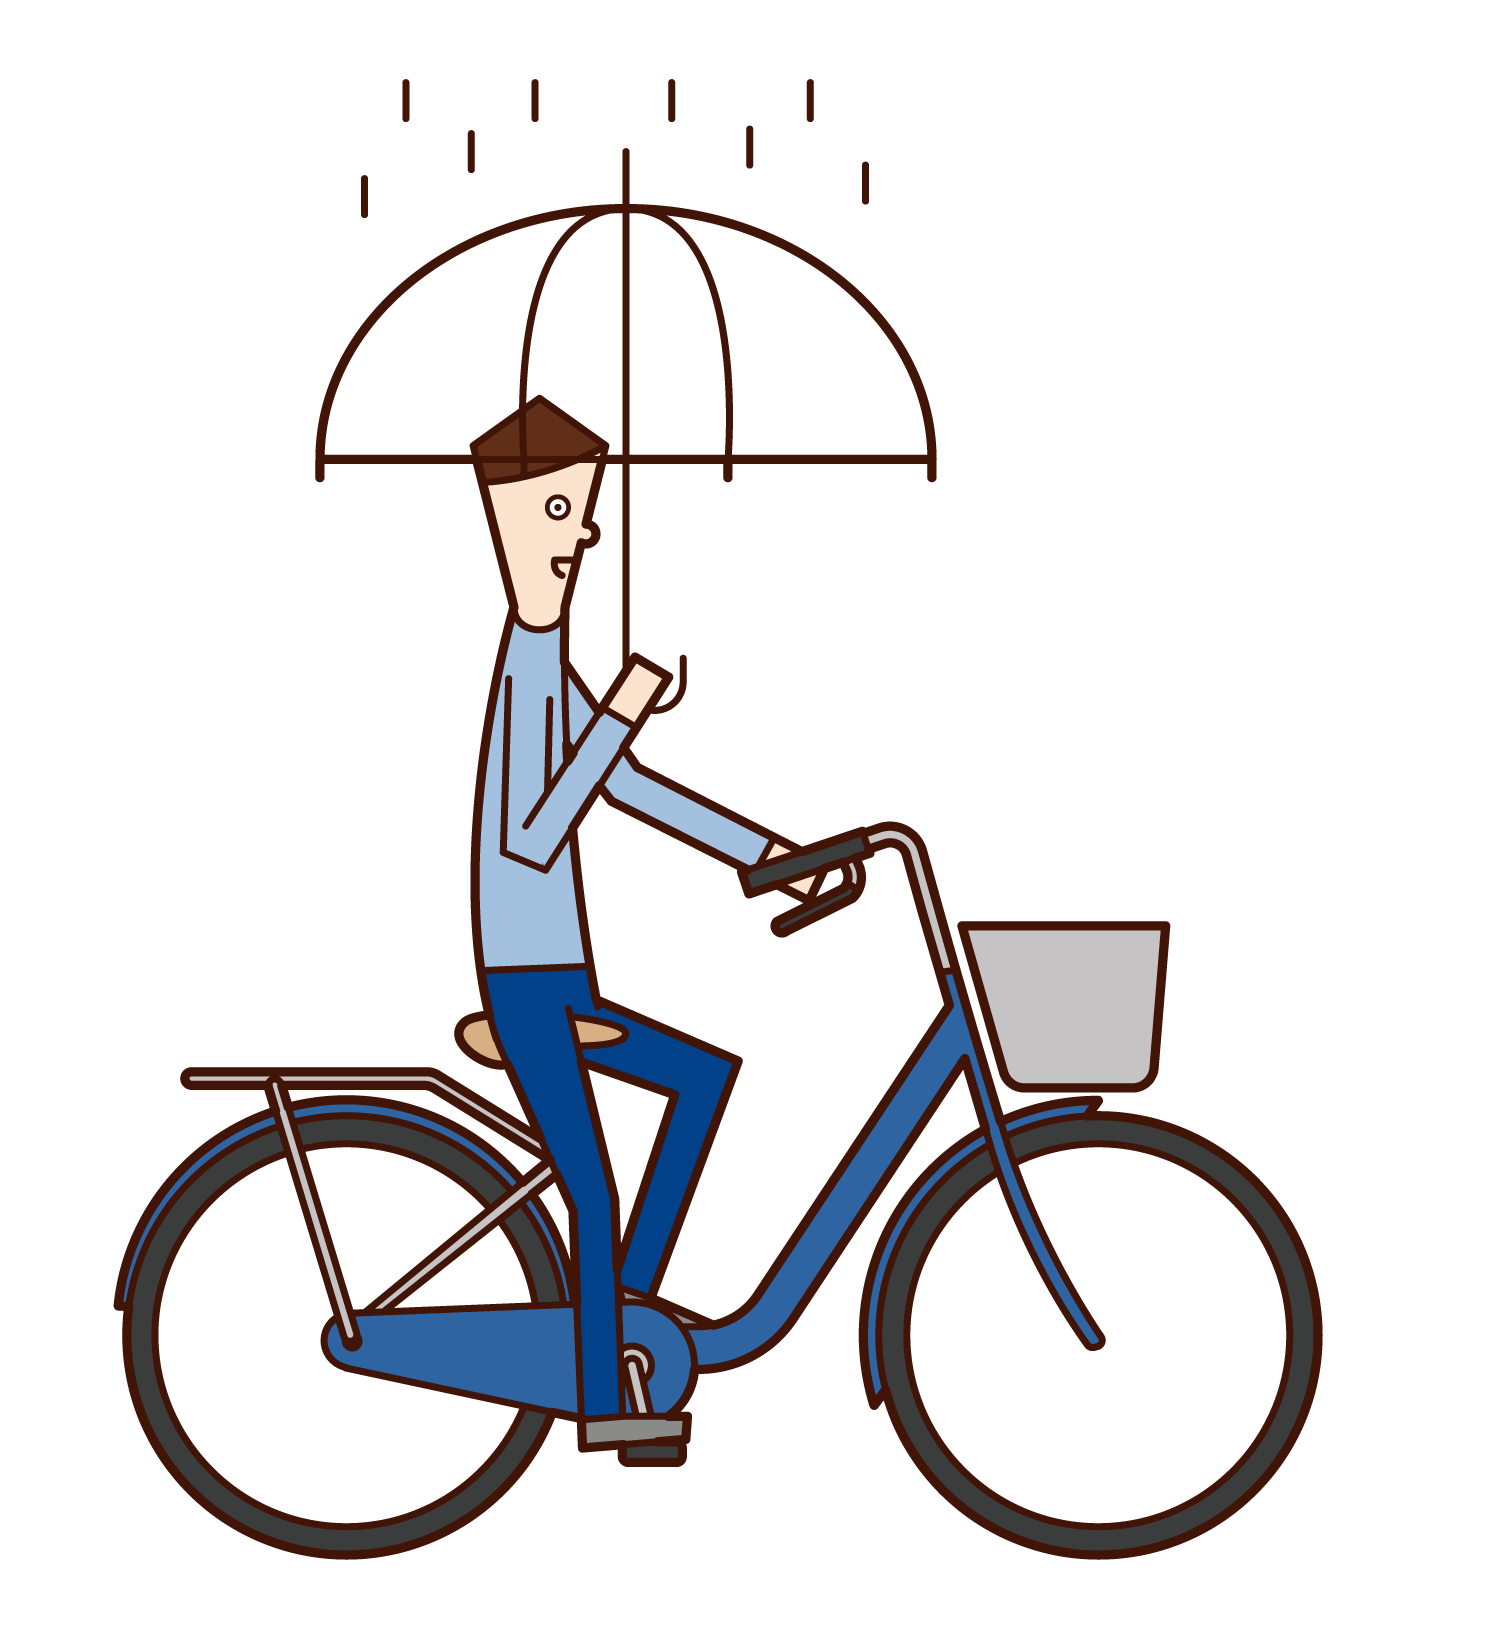 Illustration of a man riding a bicycle with an umbrella